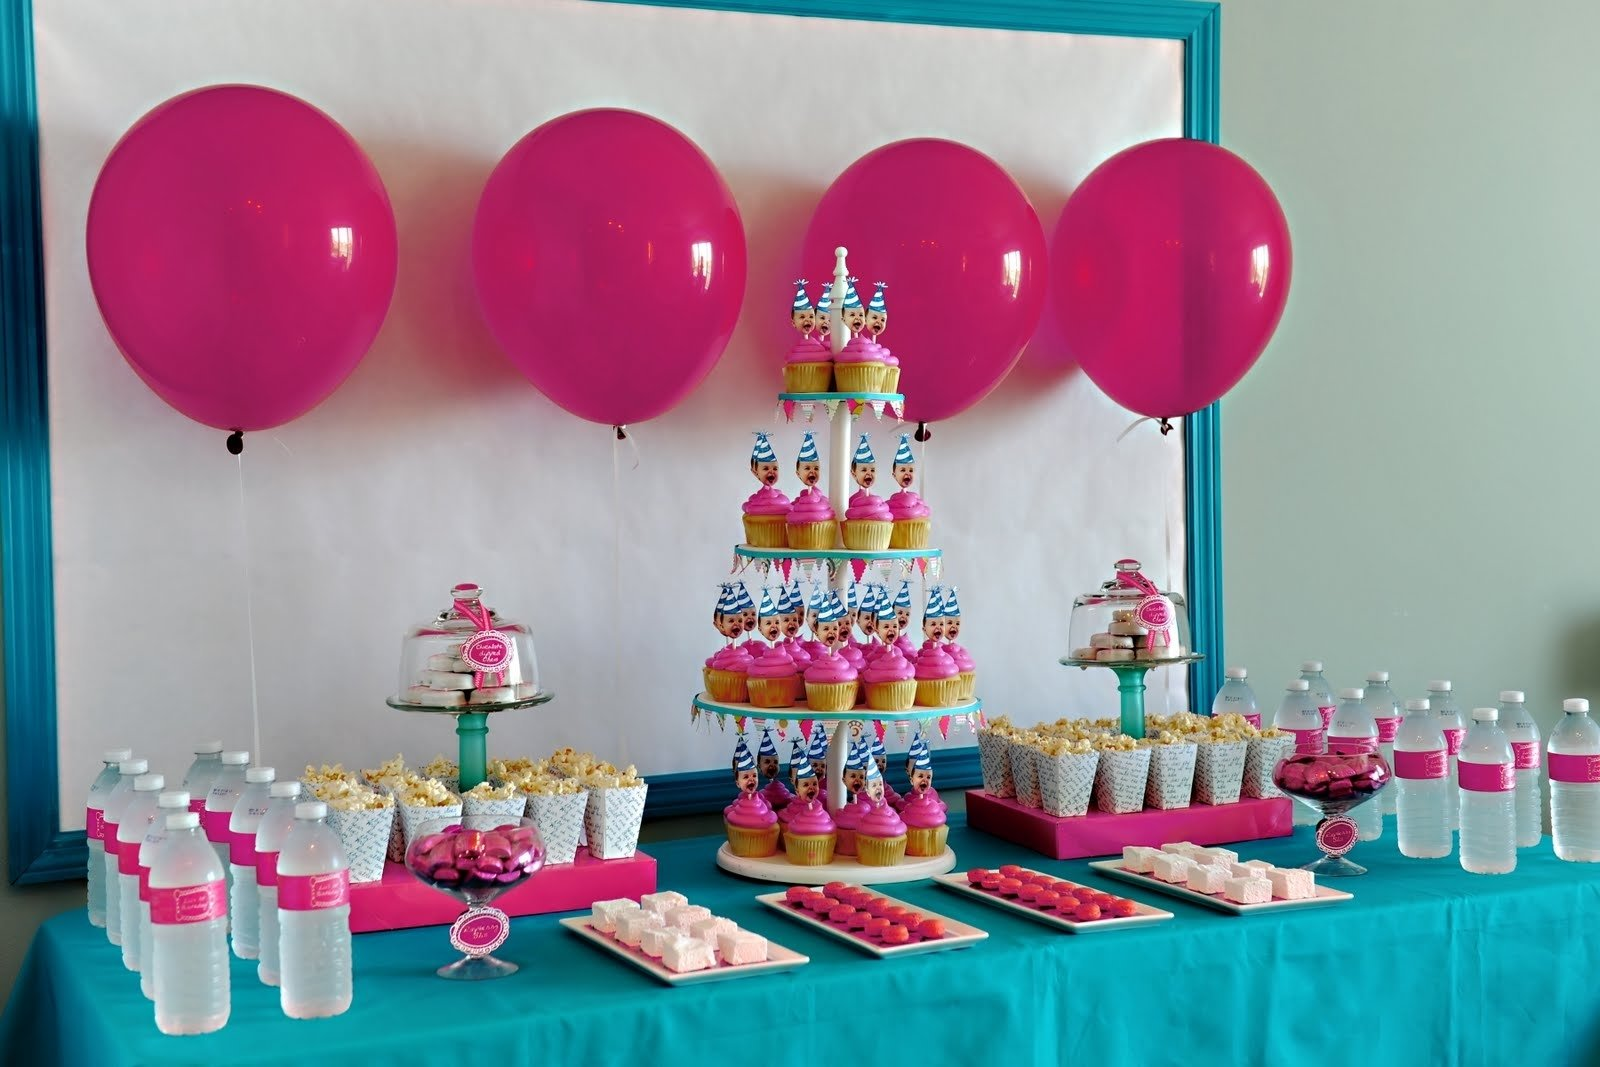 10 Lovely Birthday Party Ideas For 3 Yr Old Girl elle belle creative one year old in a flash the dessert table 7 2020